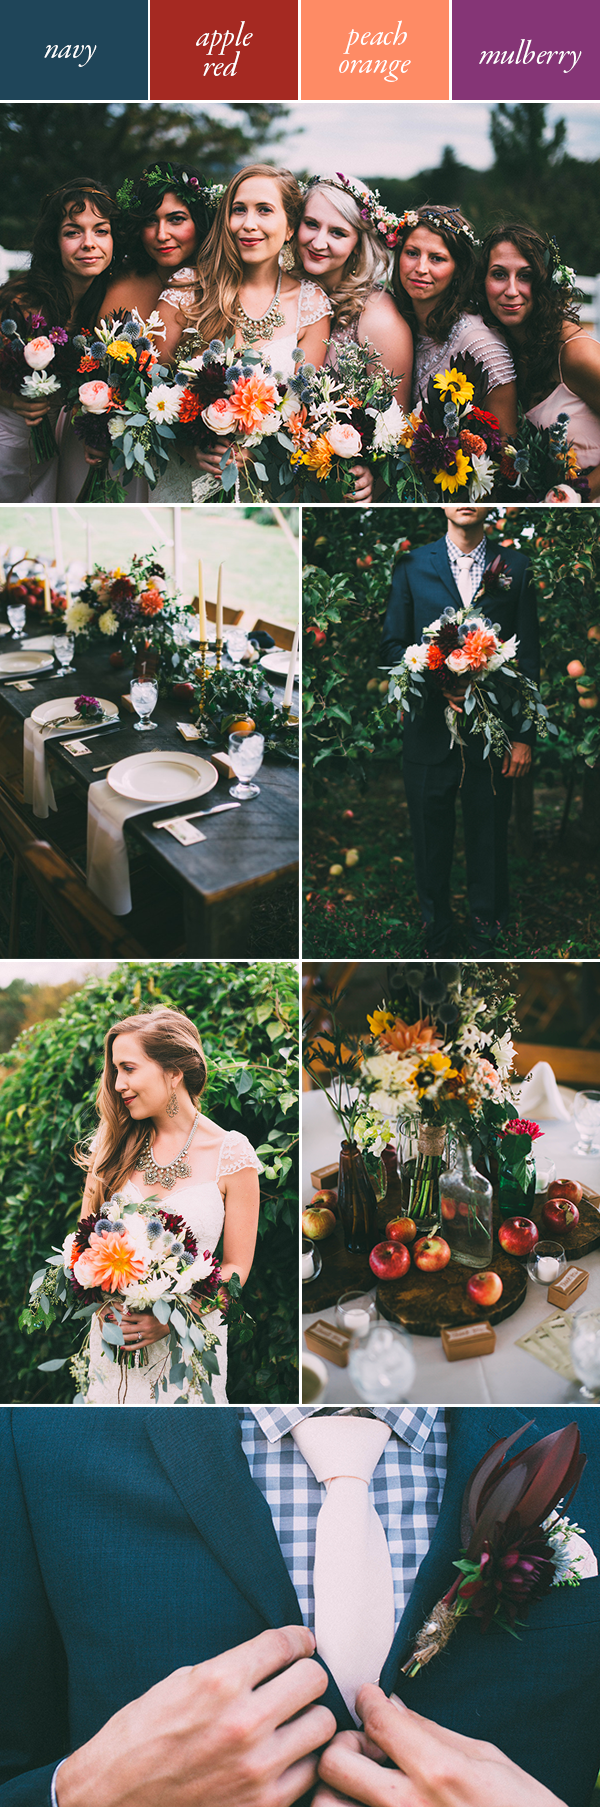 Get Inspired By These Moody Wedding Color Palettes Junebug Weddings